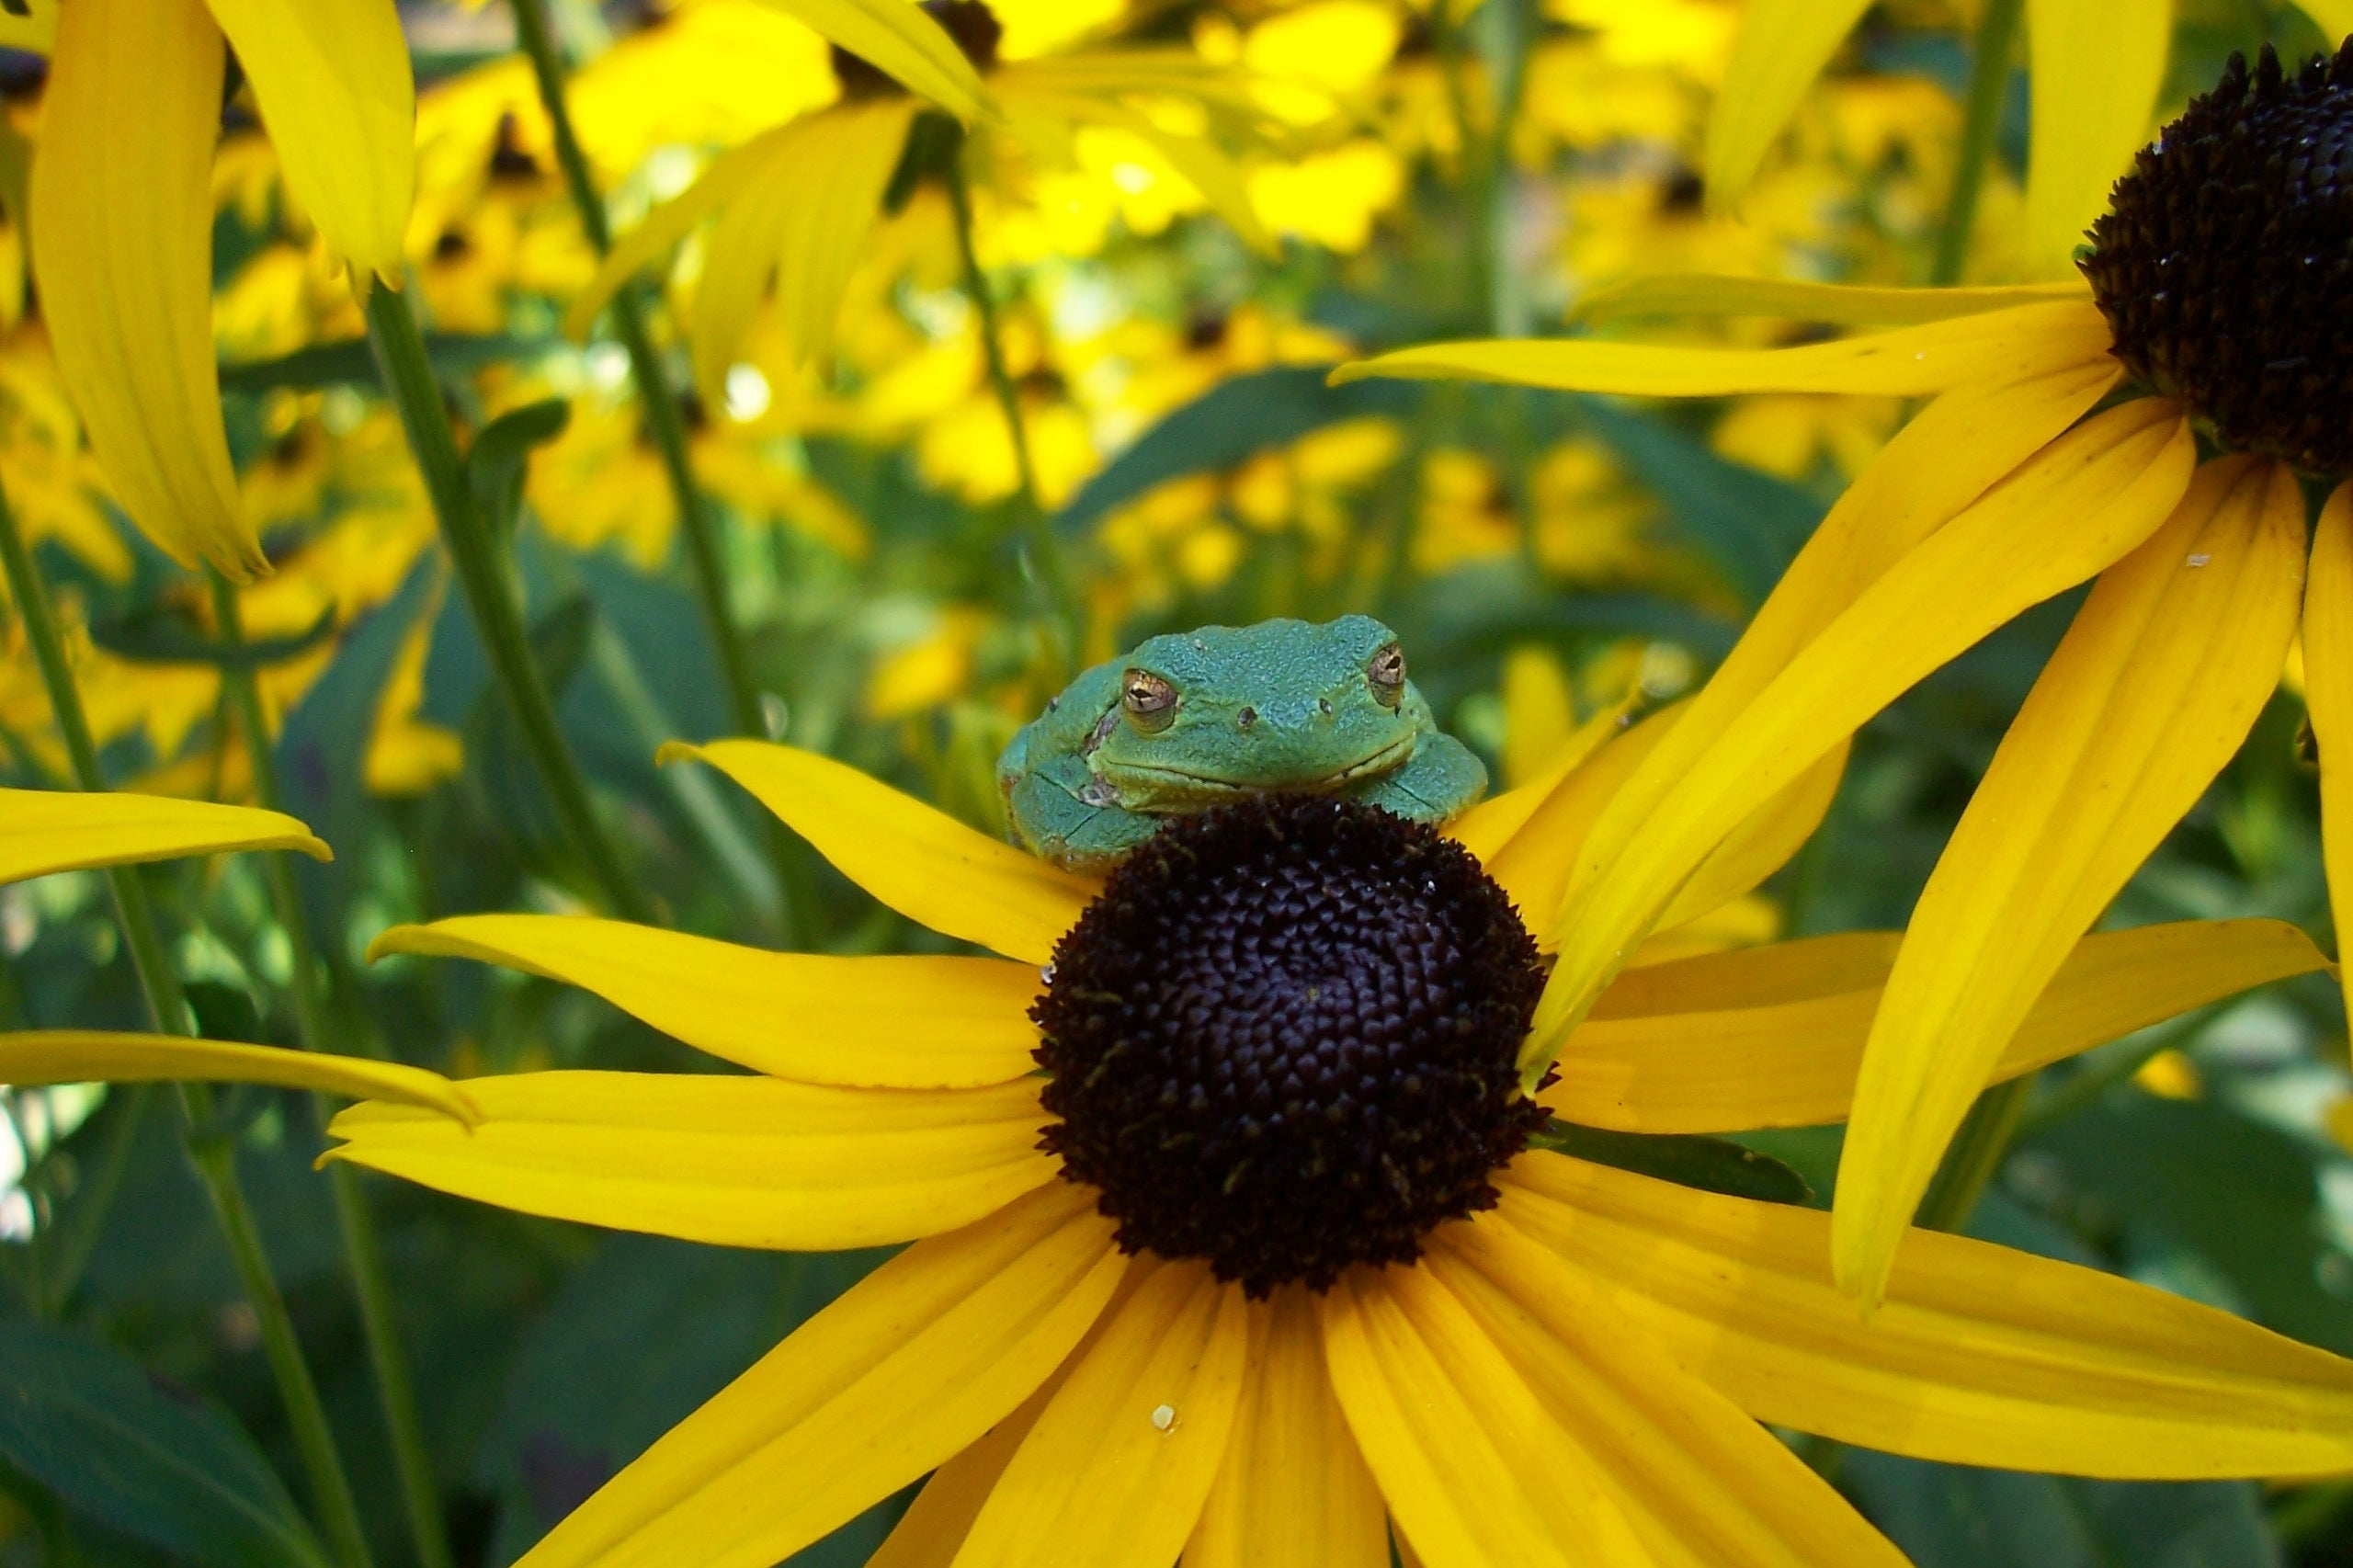 sunflower with frog sitting on top